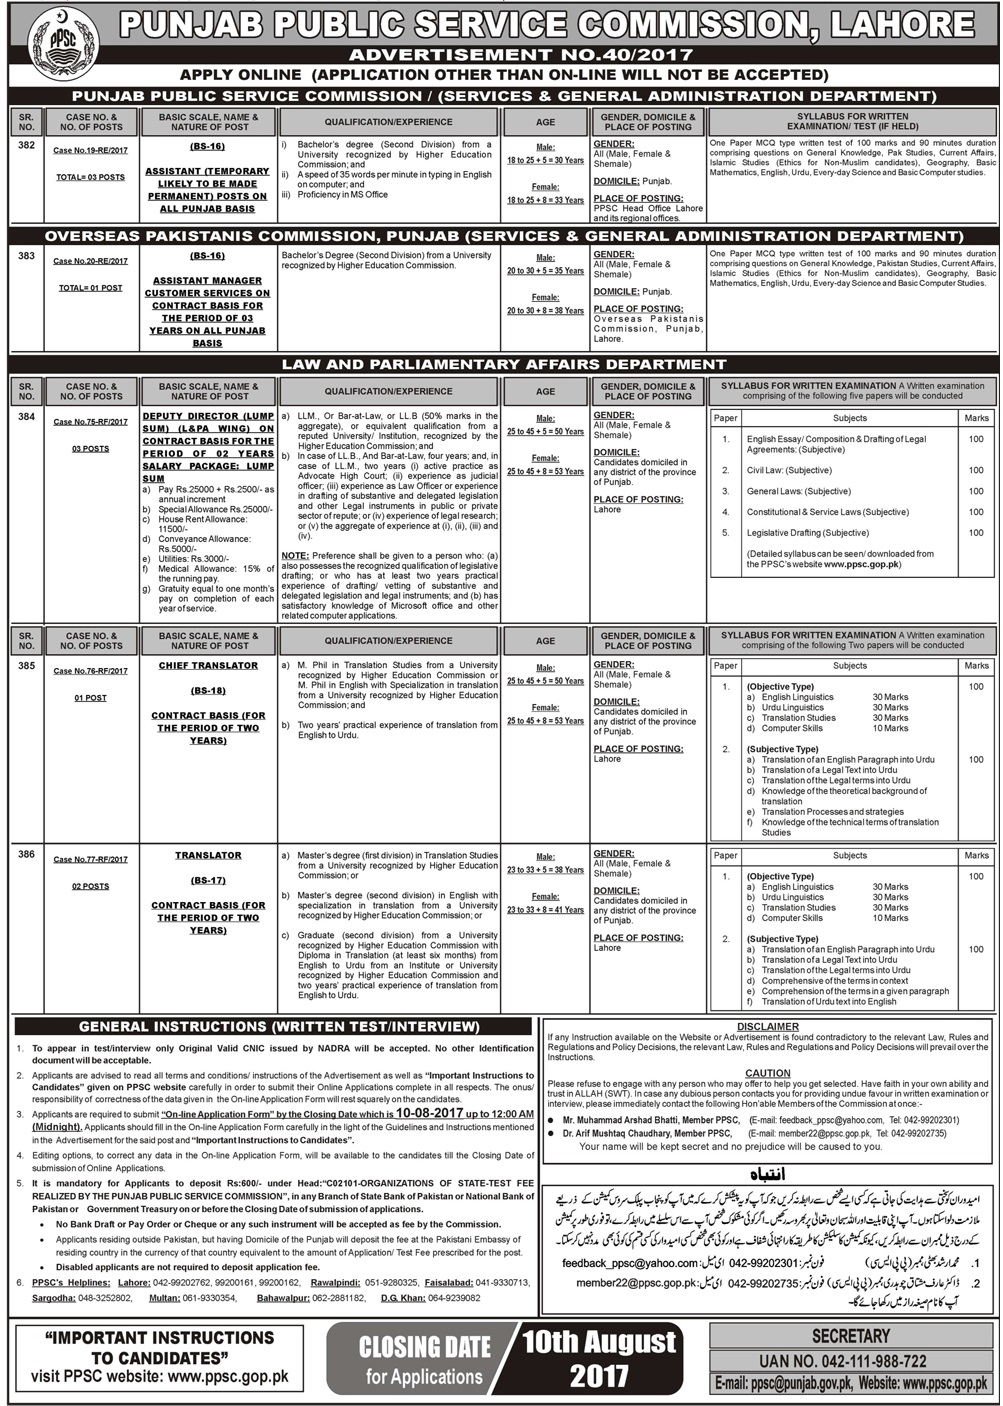 PPSC Jobs 2017 July Month Advertisements Law and Parliamentary Affair, Overseas Pakistan Commission Department